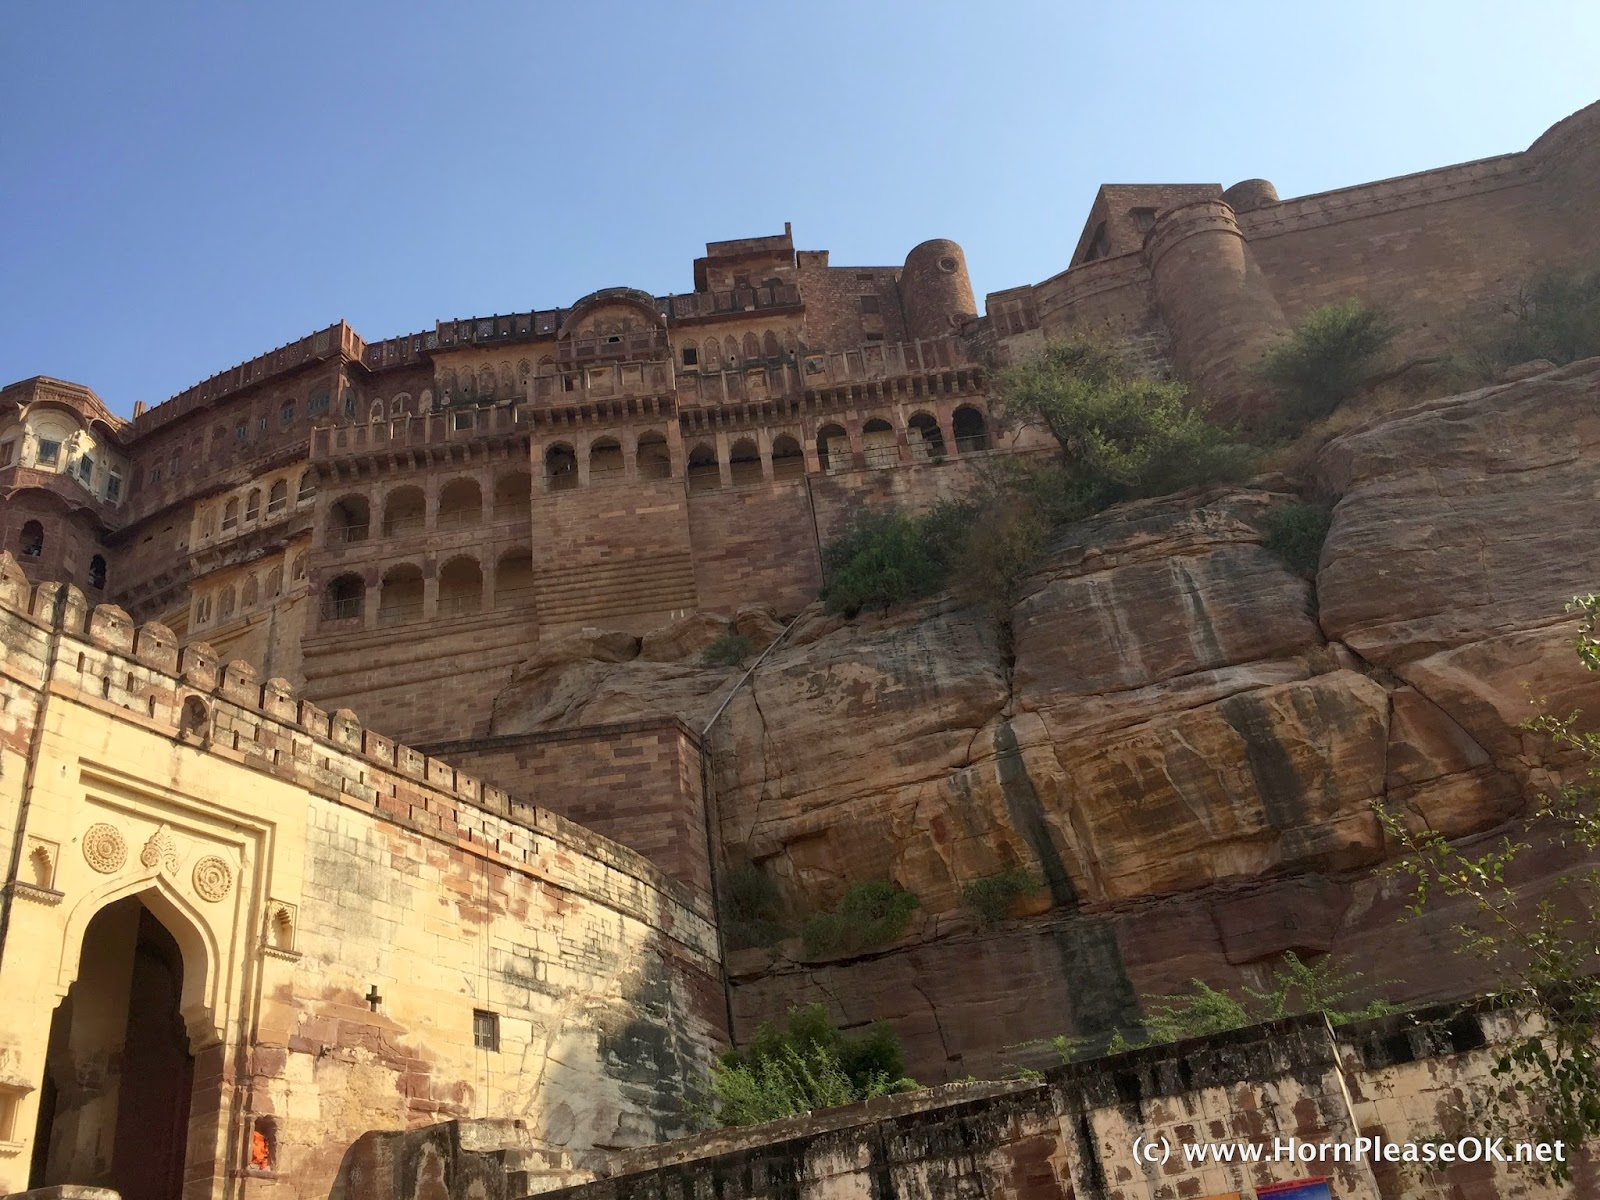 A view of Mehrangarh Fort from one of its 7 gates